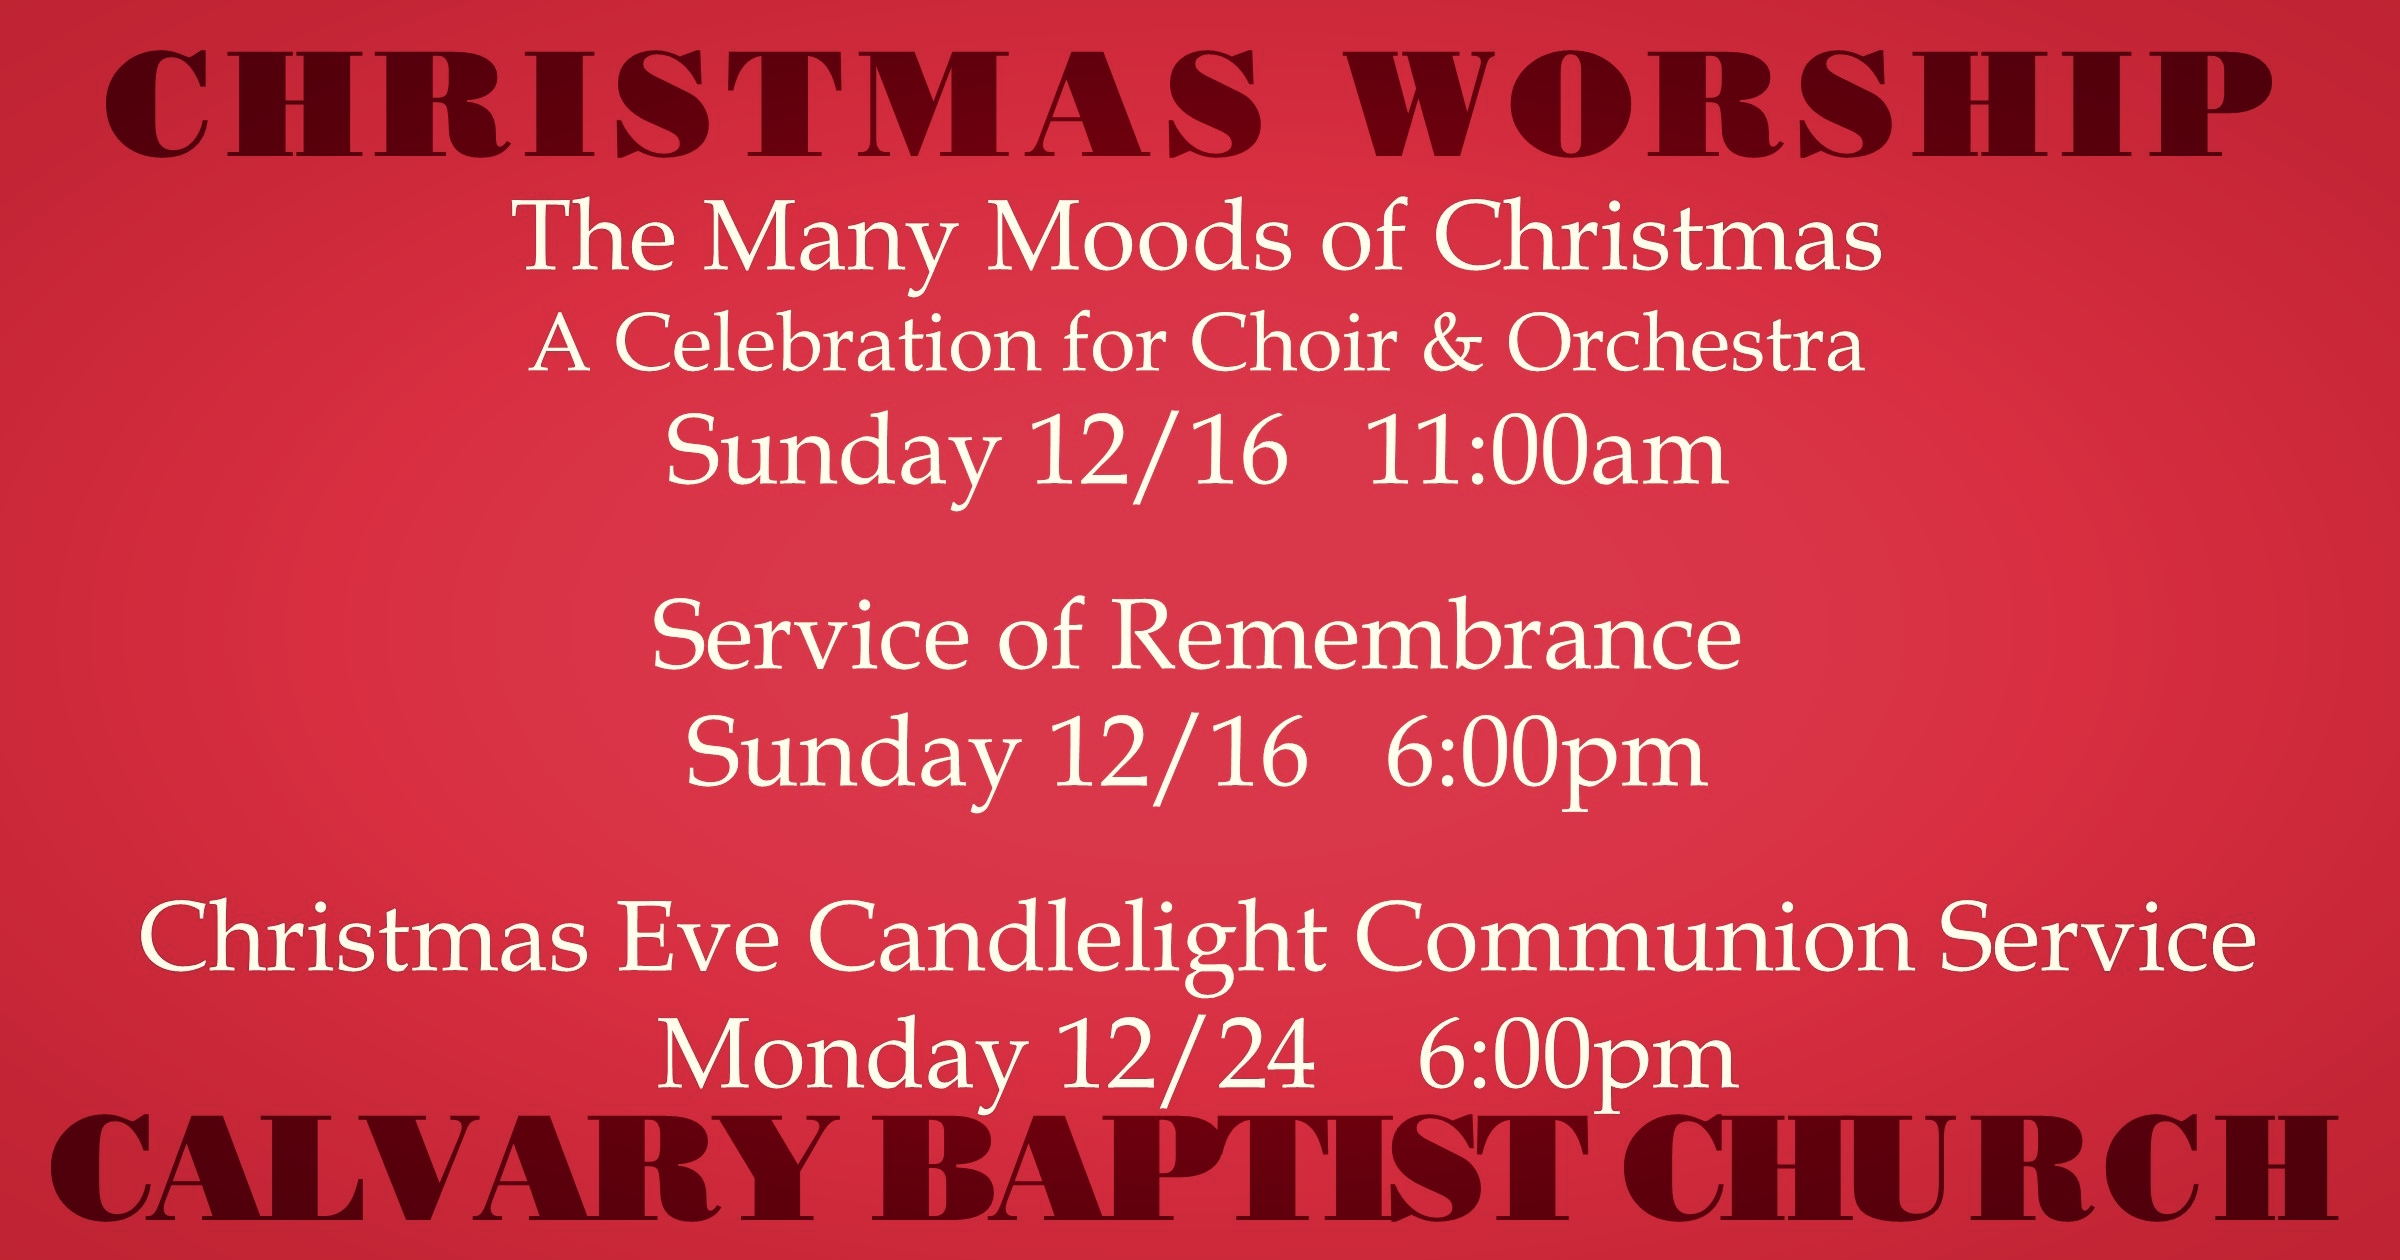 Christmas Schedule 2018 facebook link 111318.jpg